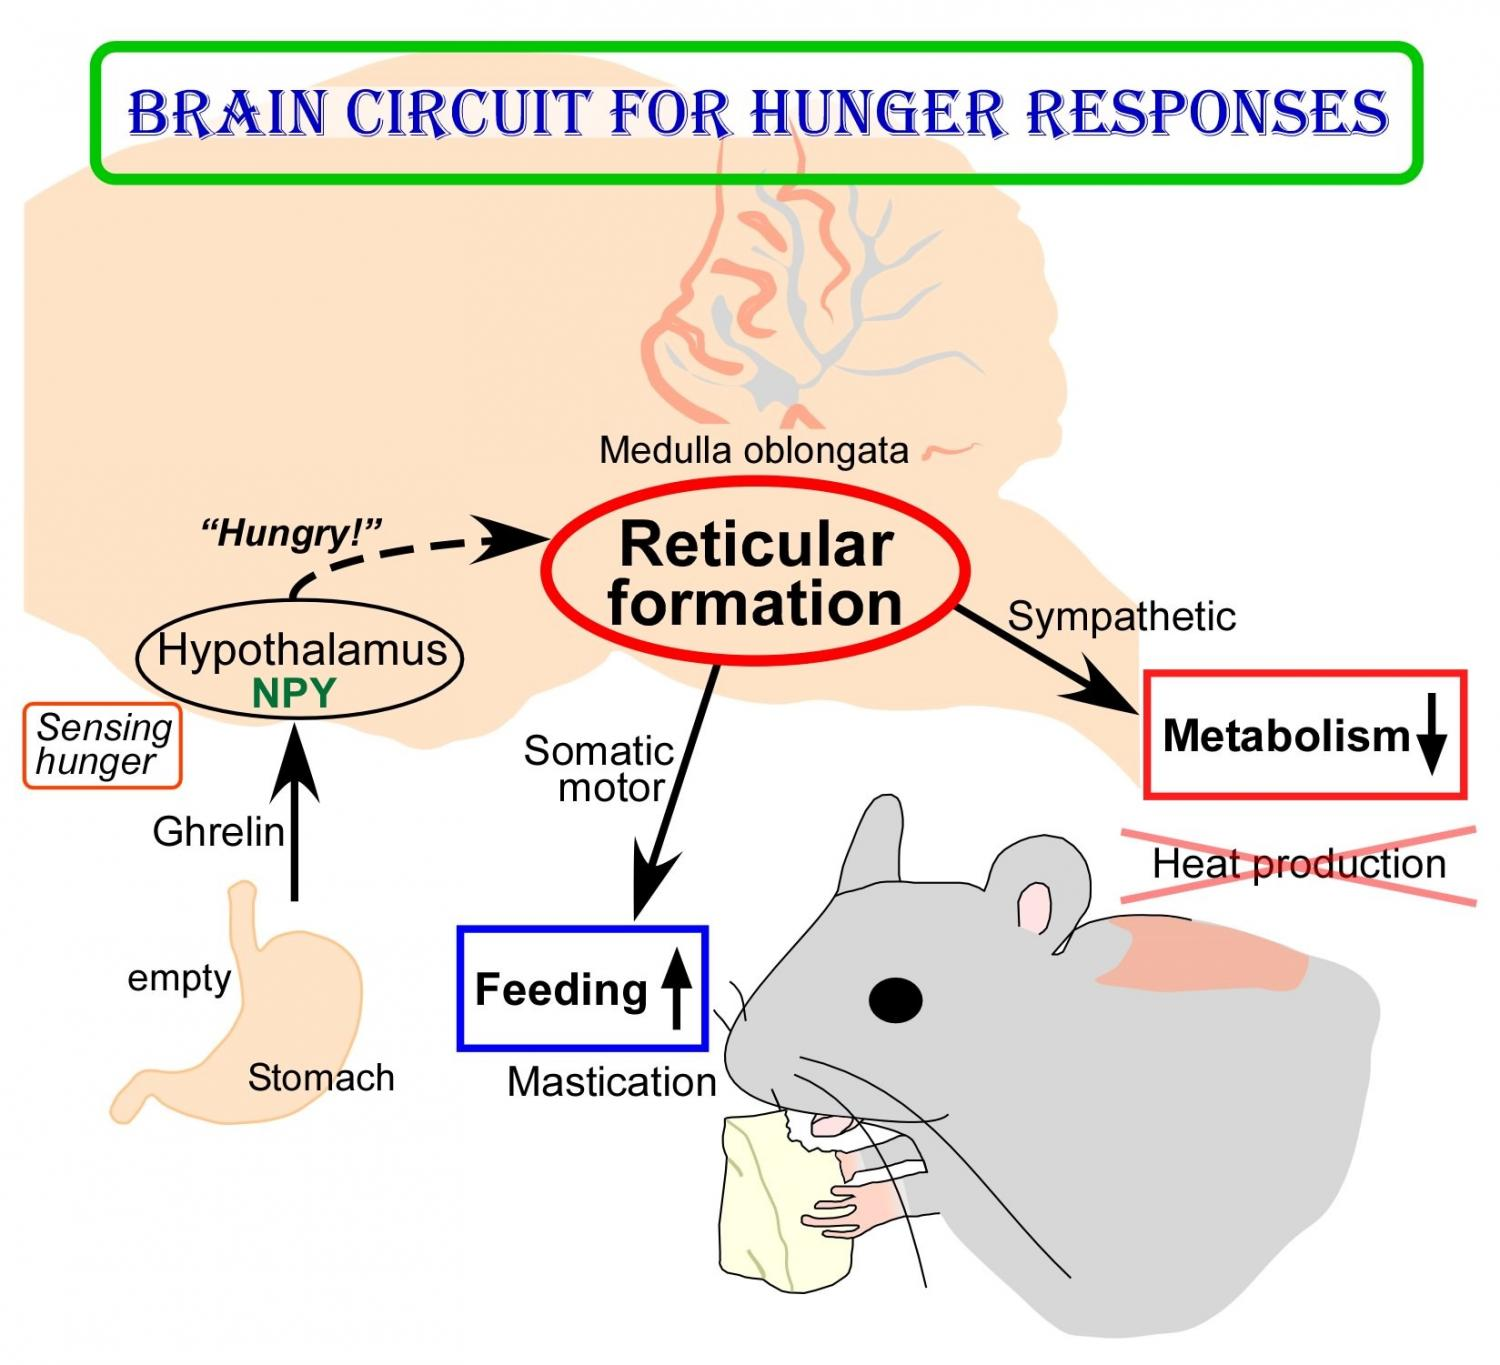 new insights into brain circuit for hunger responses diagram for colon cancer colon for a fuse box diagram for 2002 town car